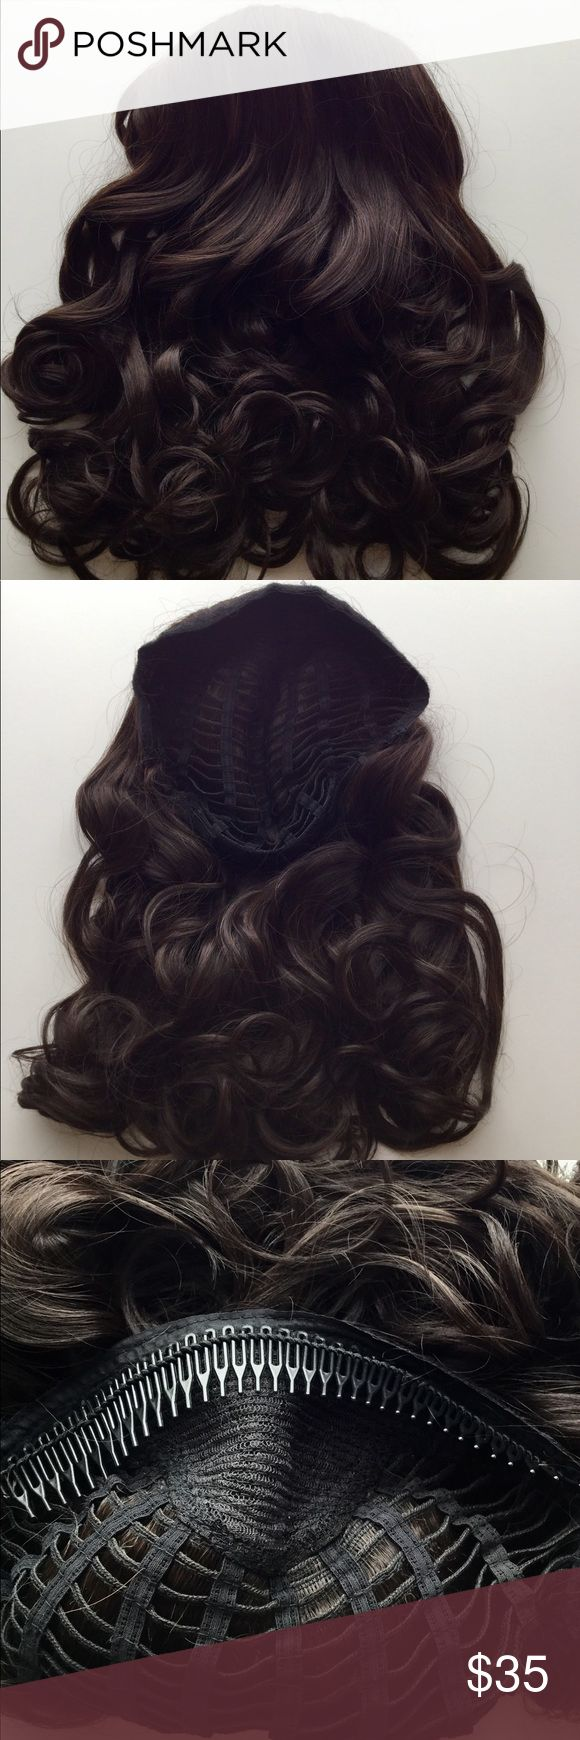 """23"""" Comb in Wavy Synthetic Headband Extension 23"""" Synthetic Comb in Headband 1pc Hair Extension in Chestnut color. This a high quality custom made hair extension by the Hair Voyager Co. Hair can be gently combed for a less wavy effect. Simply apply at crown of head and blend own hair back over, OR comb through hair from front and use your own scarf or headband over the edge. Very versatile! Creates length and volume in a snap! Hair Voyager Accessories Hair Accessories"""